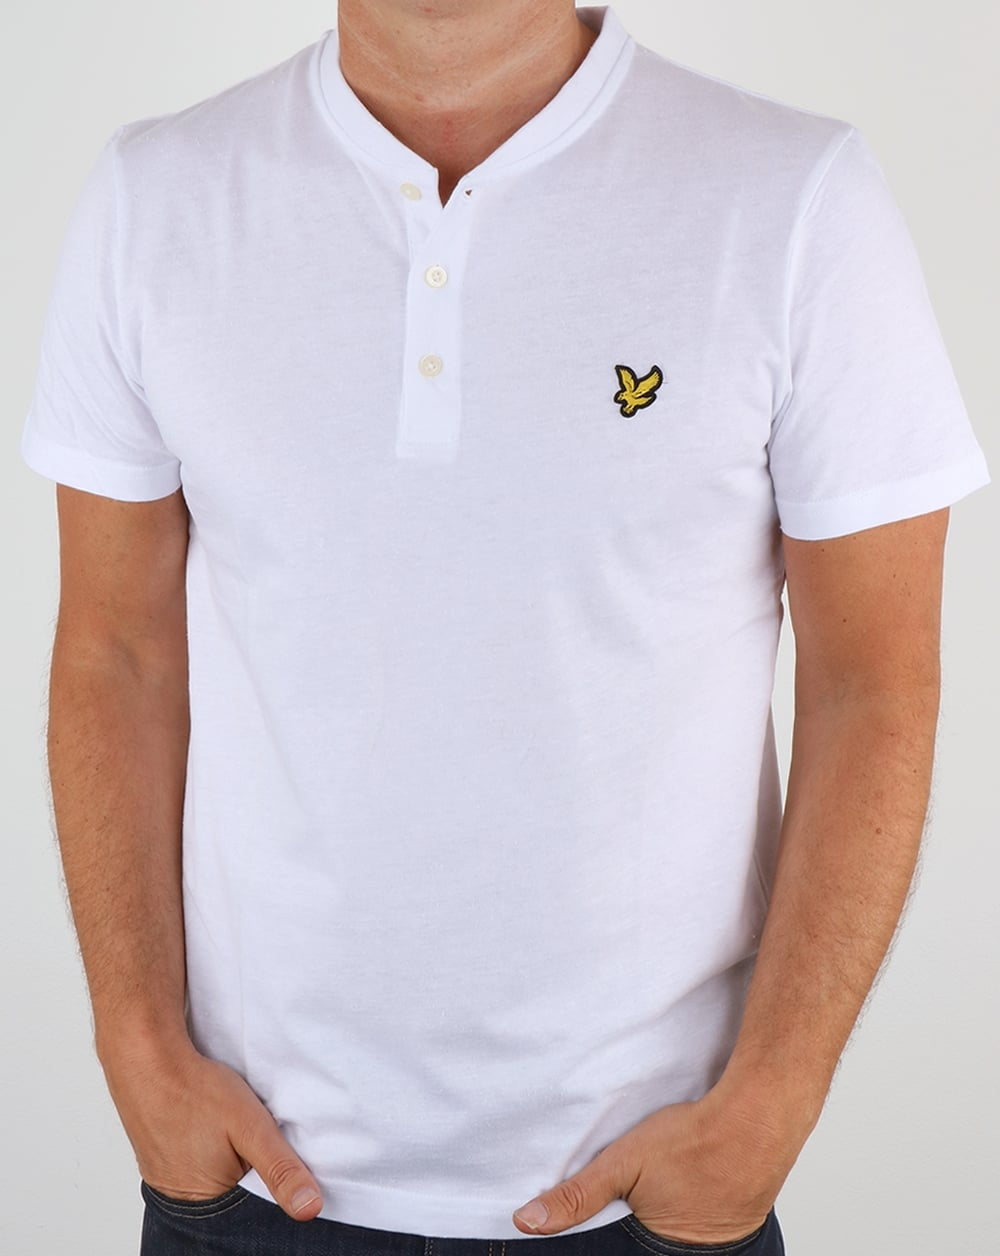 Lyle and scott henley t shirt white tee crew neck grandad mens for Lyle and scott shirt sale